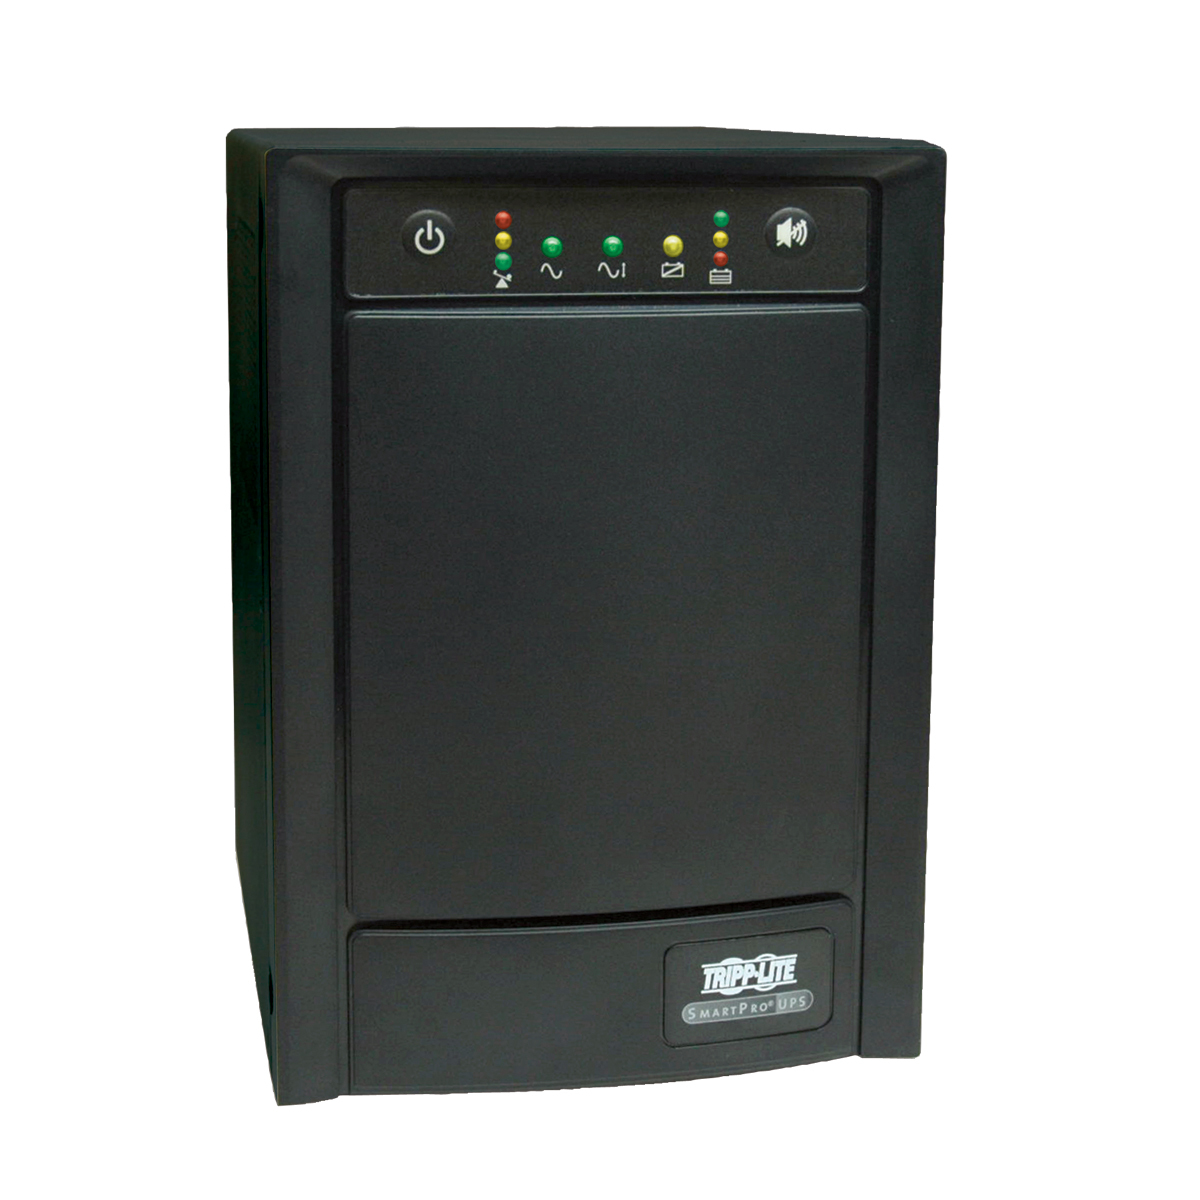 Tripp Lite SmartPro 230V 1.05kVA 650W Line-Interactive Sine Wave UPS, Tower, Network Card Options, USB, DB9, 8 Outlets